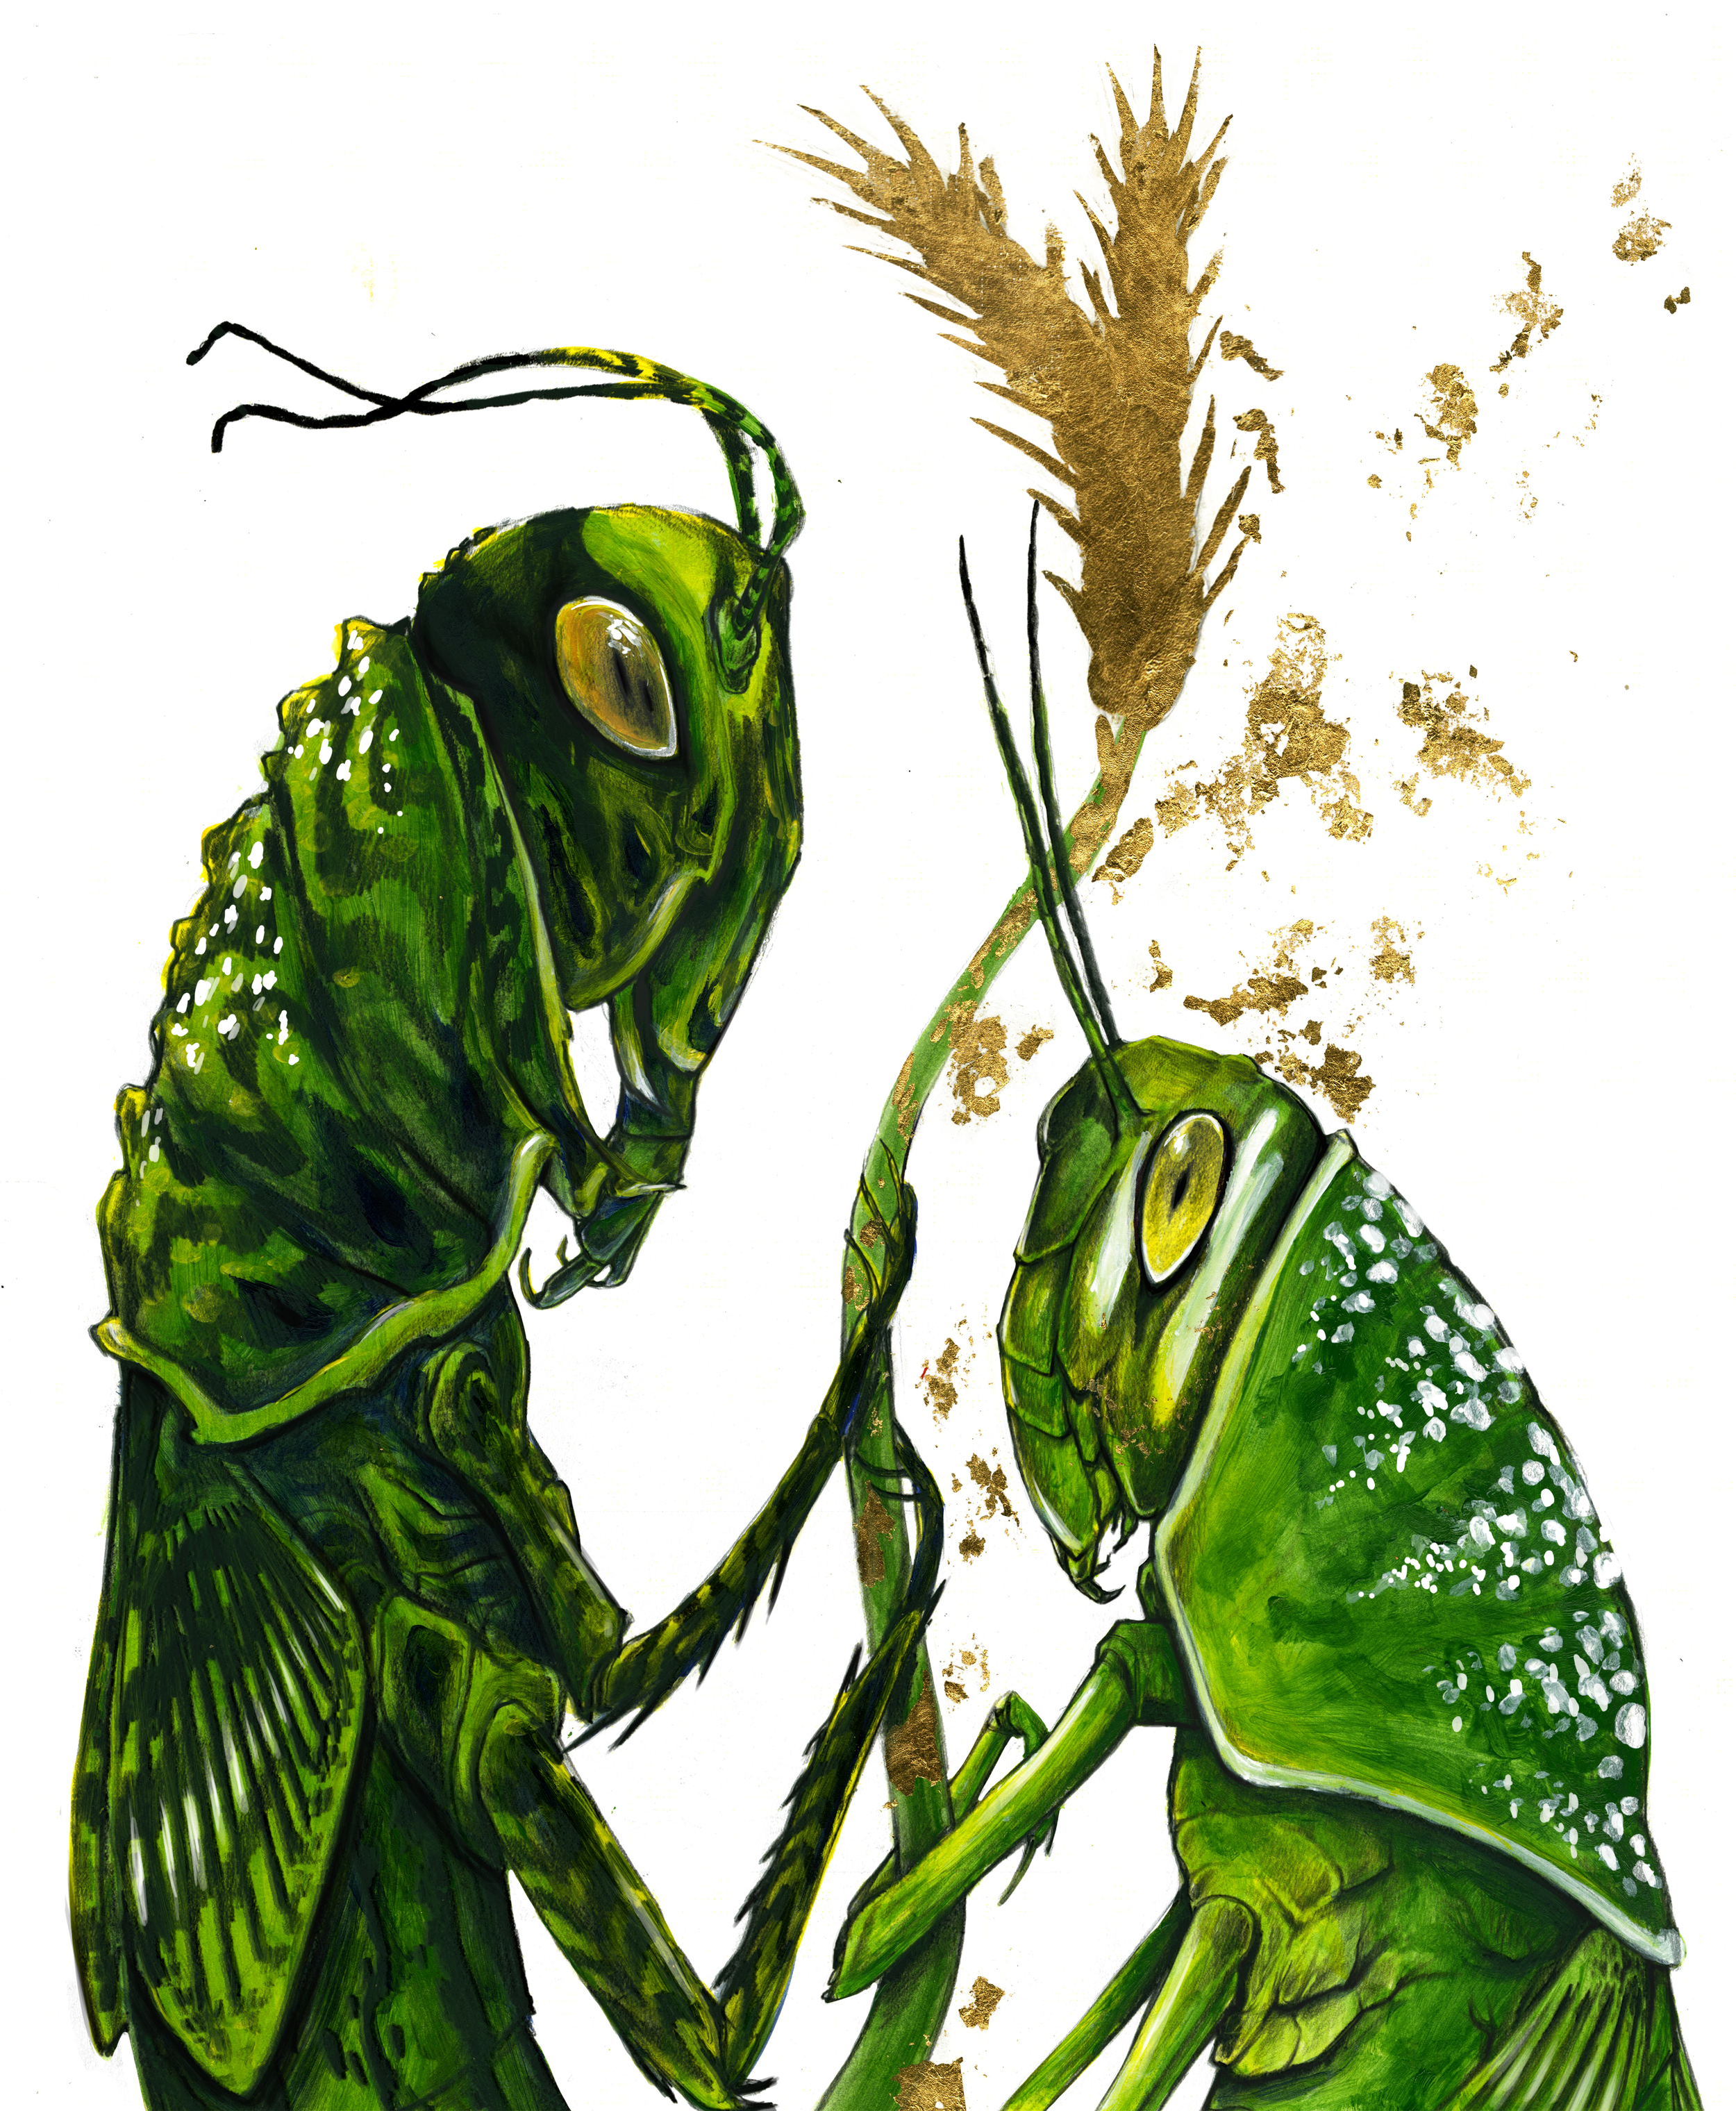 When Grasshoppers Go Biblical: Serotonin Causes Locus to Swarm- Scientific American